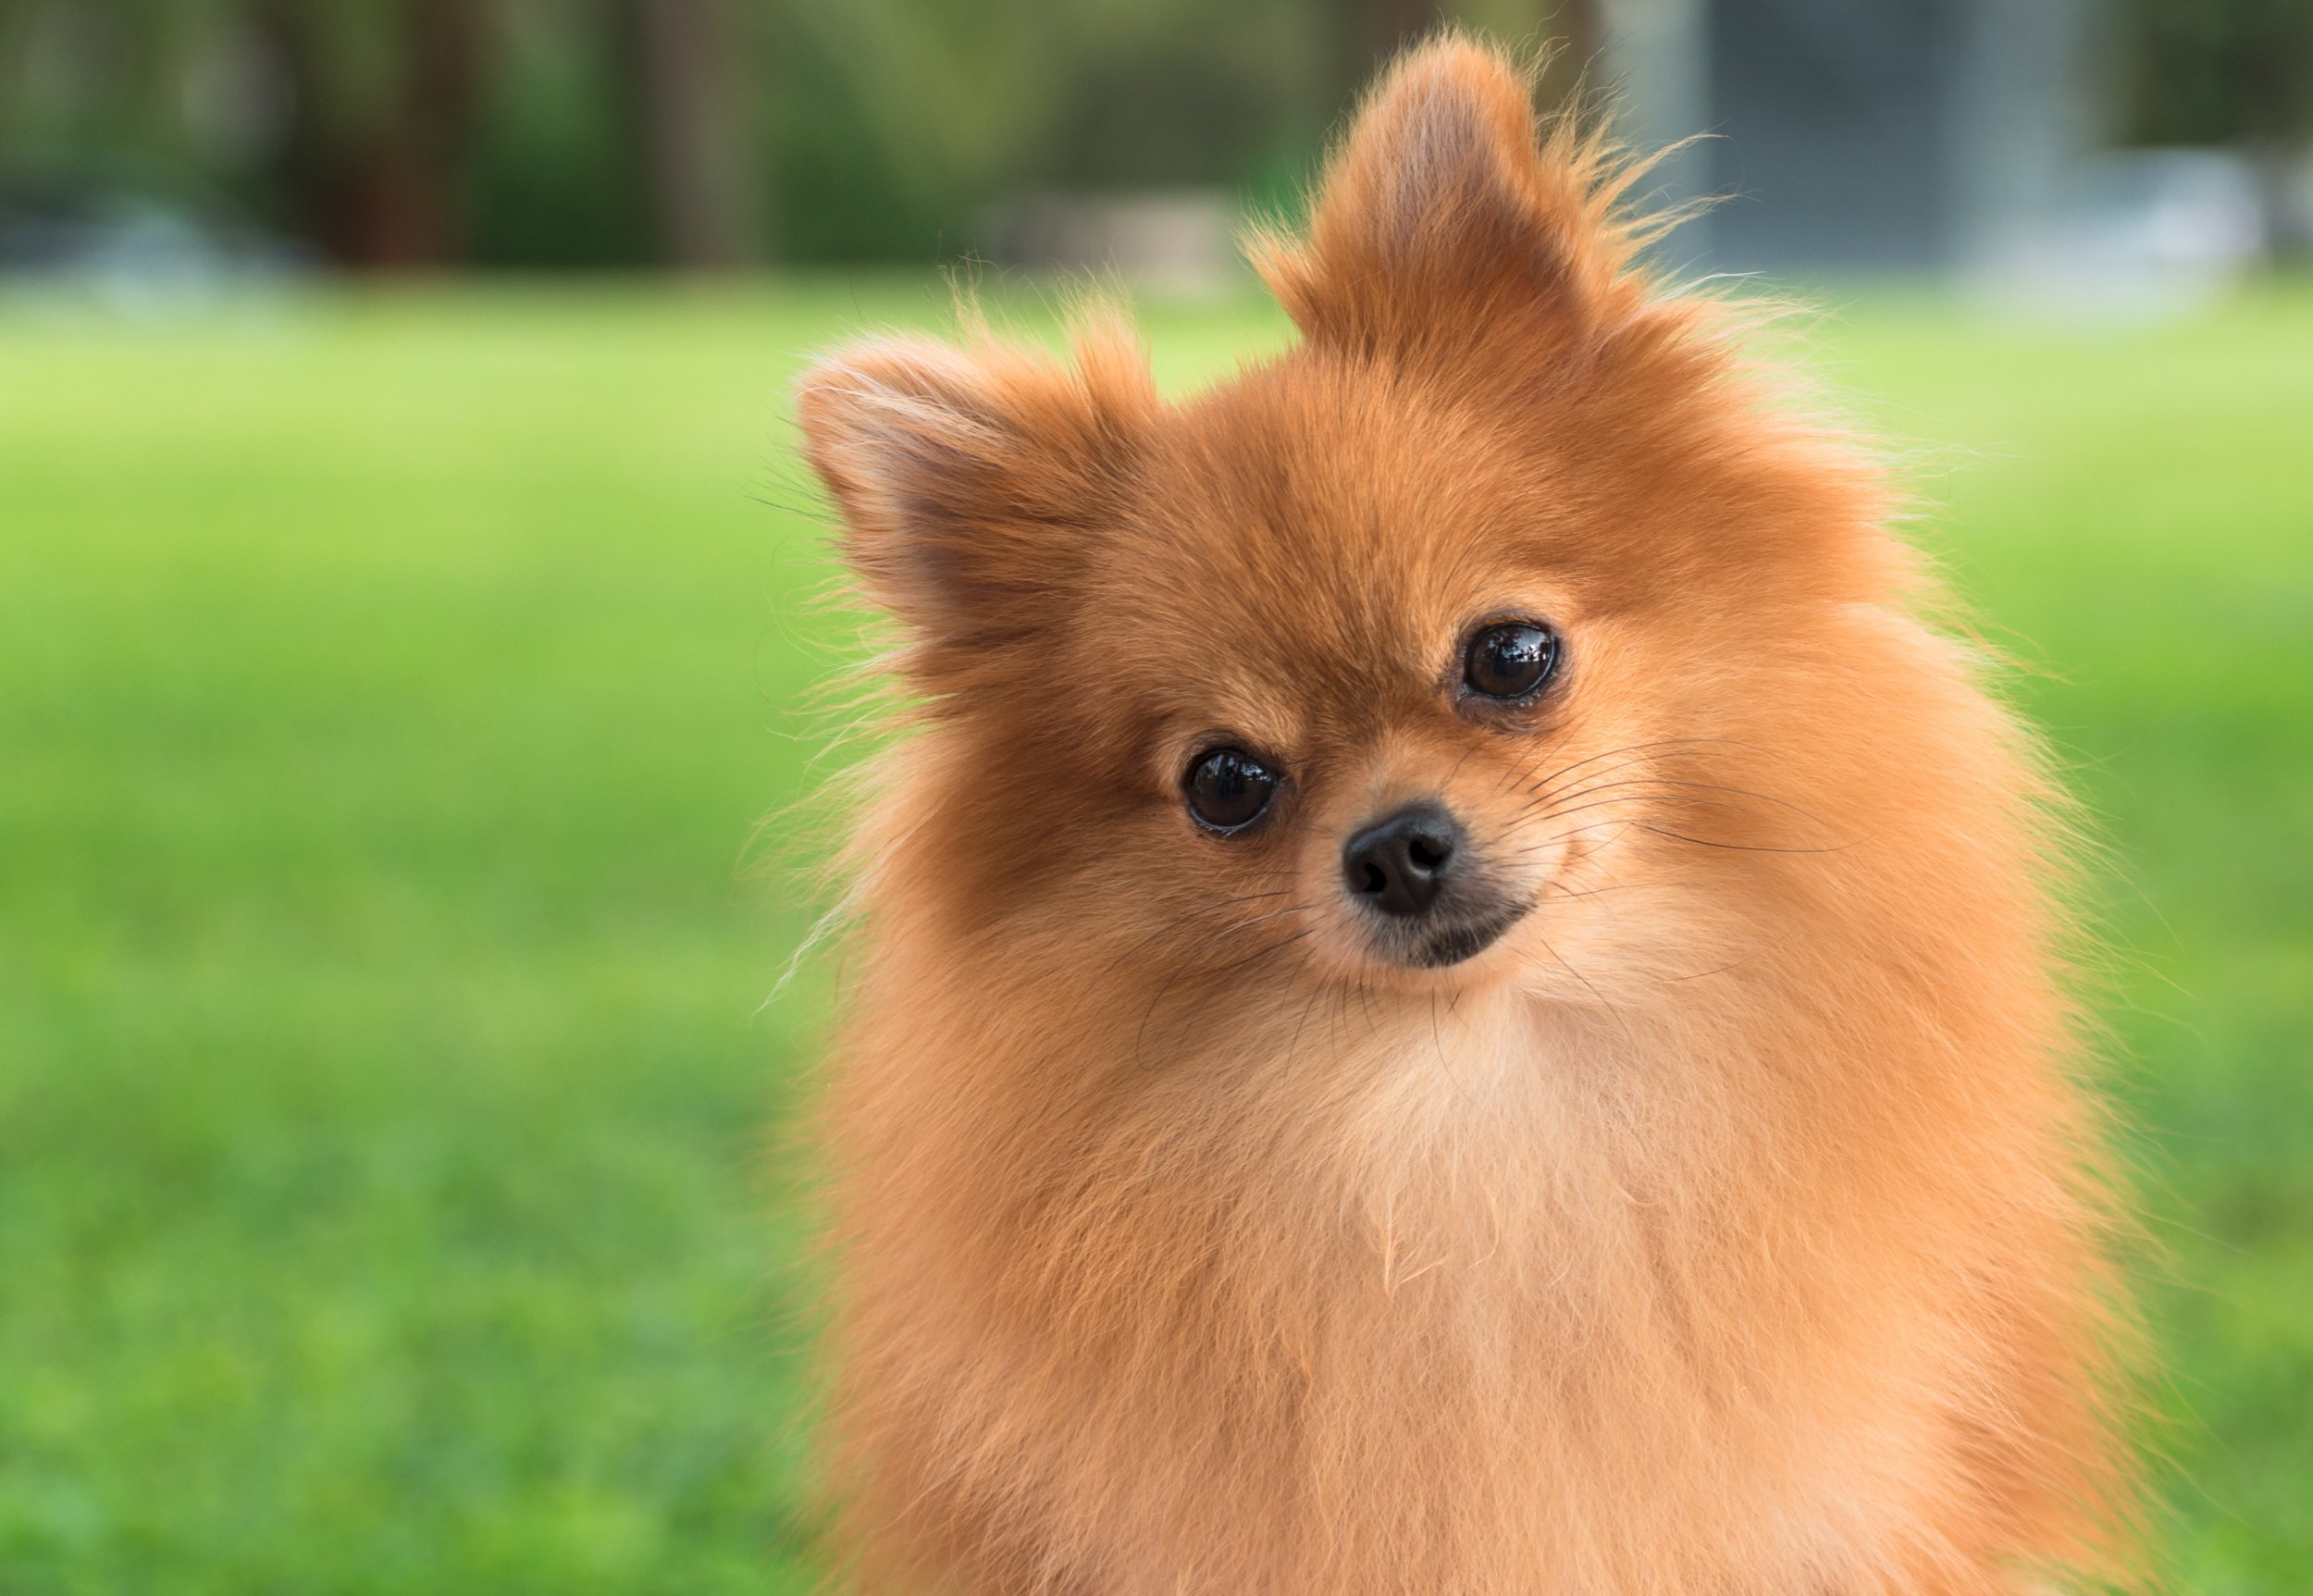 Pomeranian Puppy Kicked To Death By Teenager In Unprovoked Act Of Violence